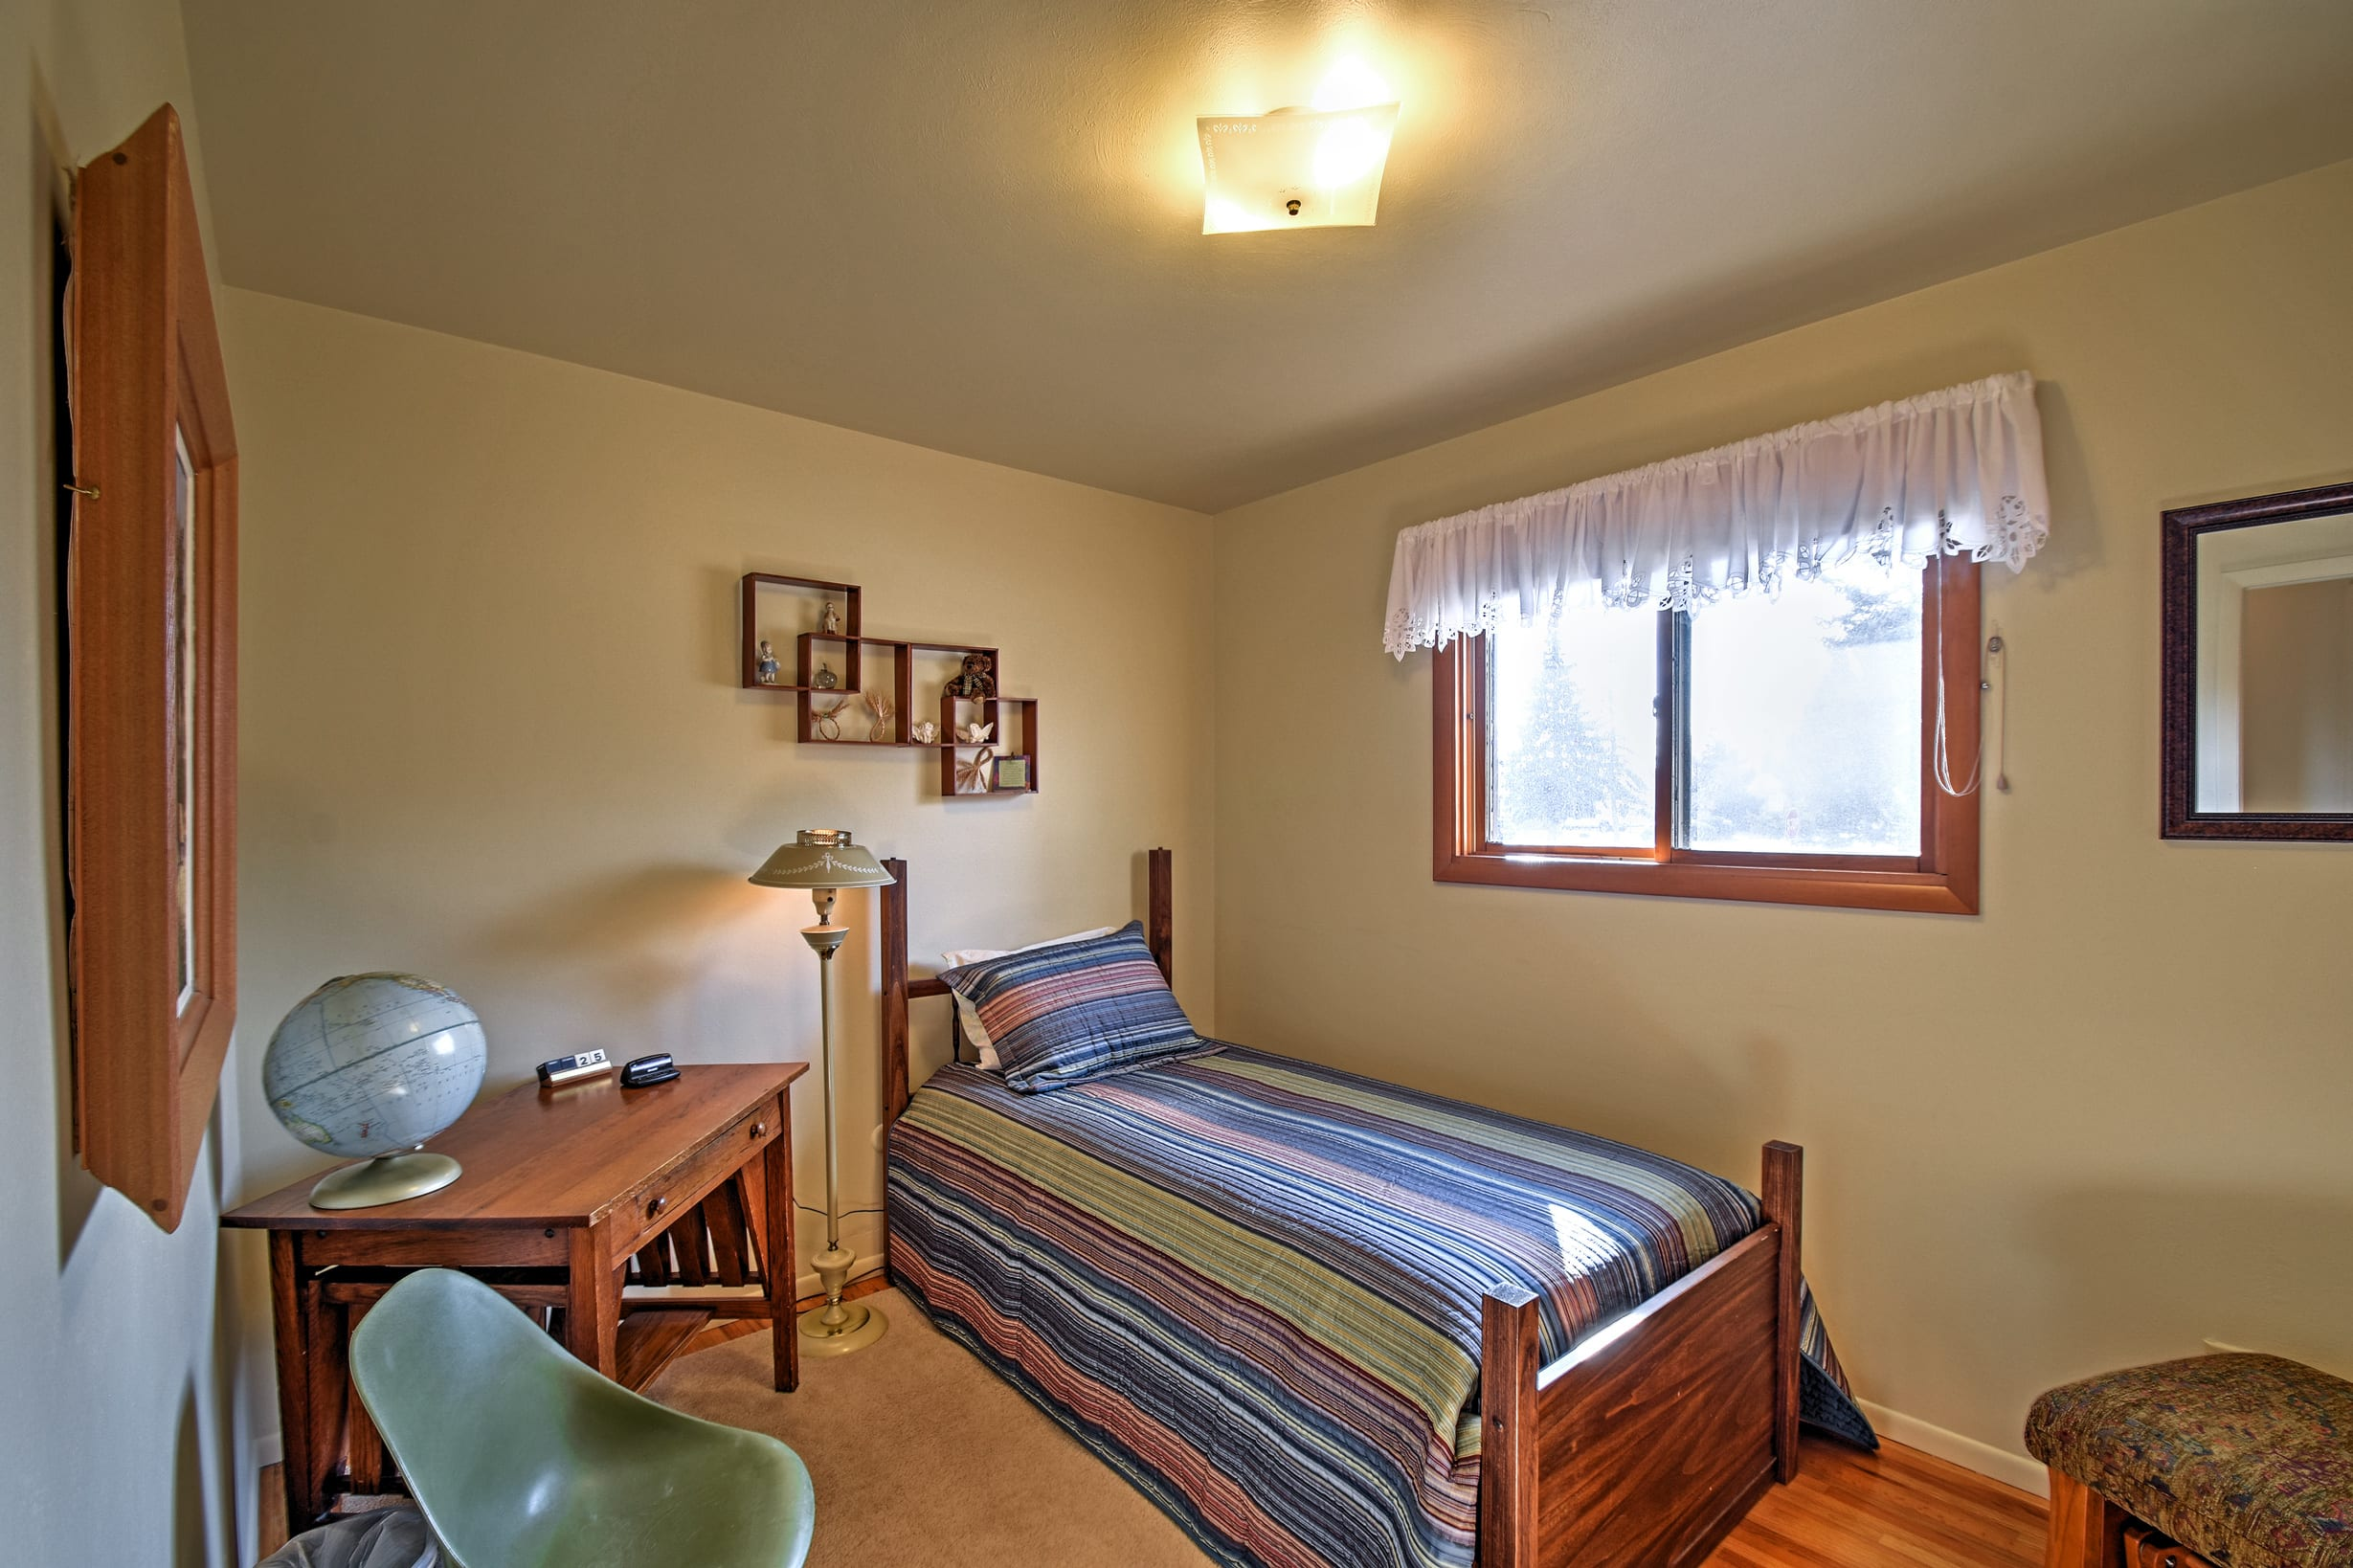 Rise and shine to ample natural sunlight flooding into the room.